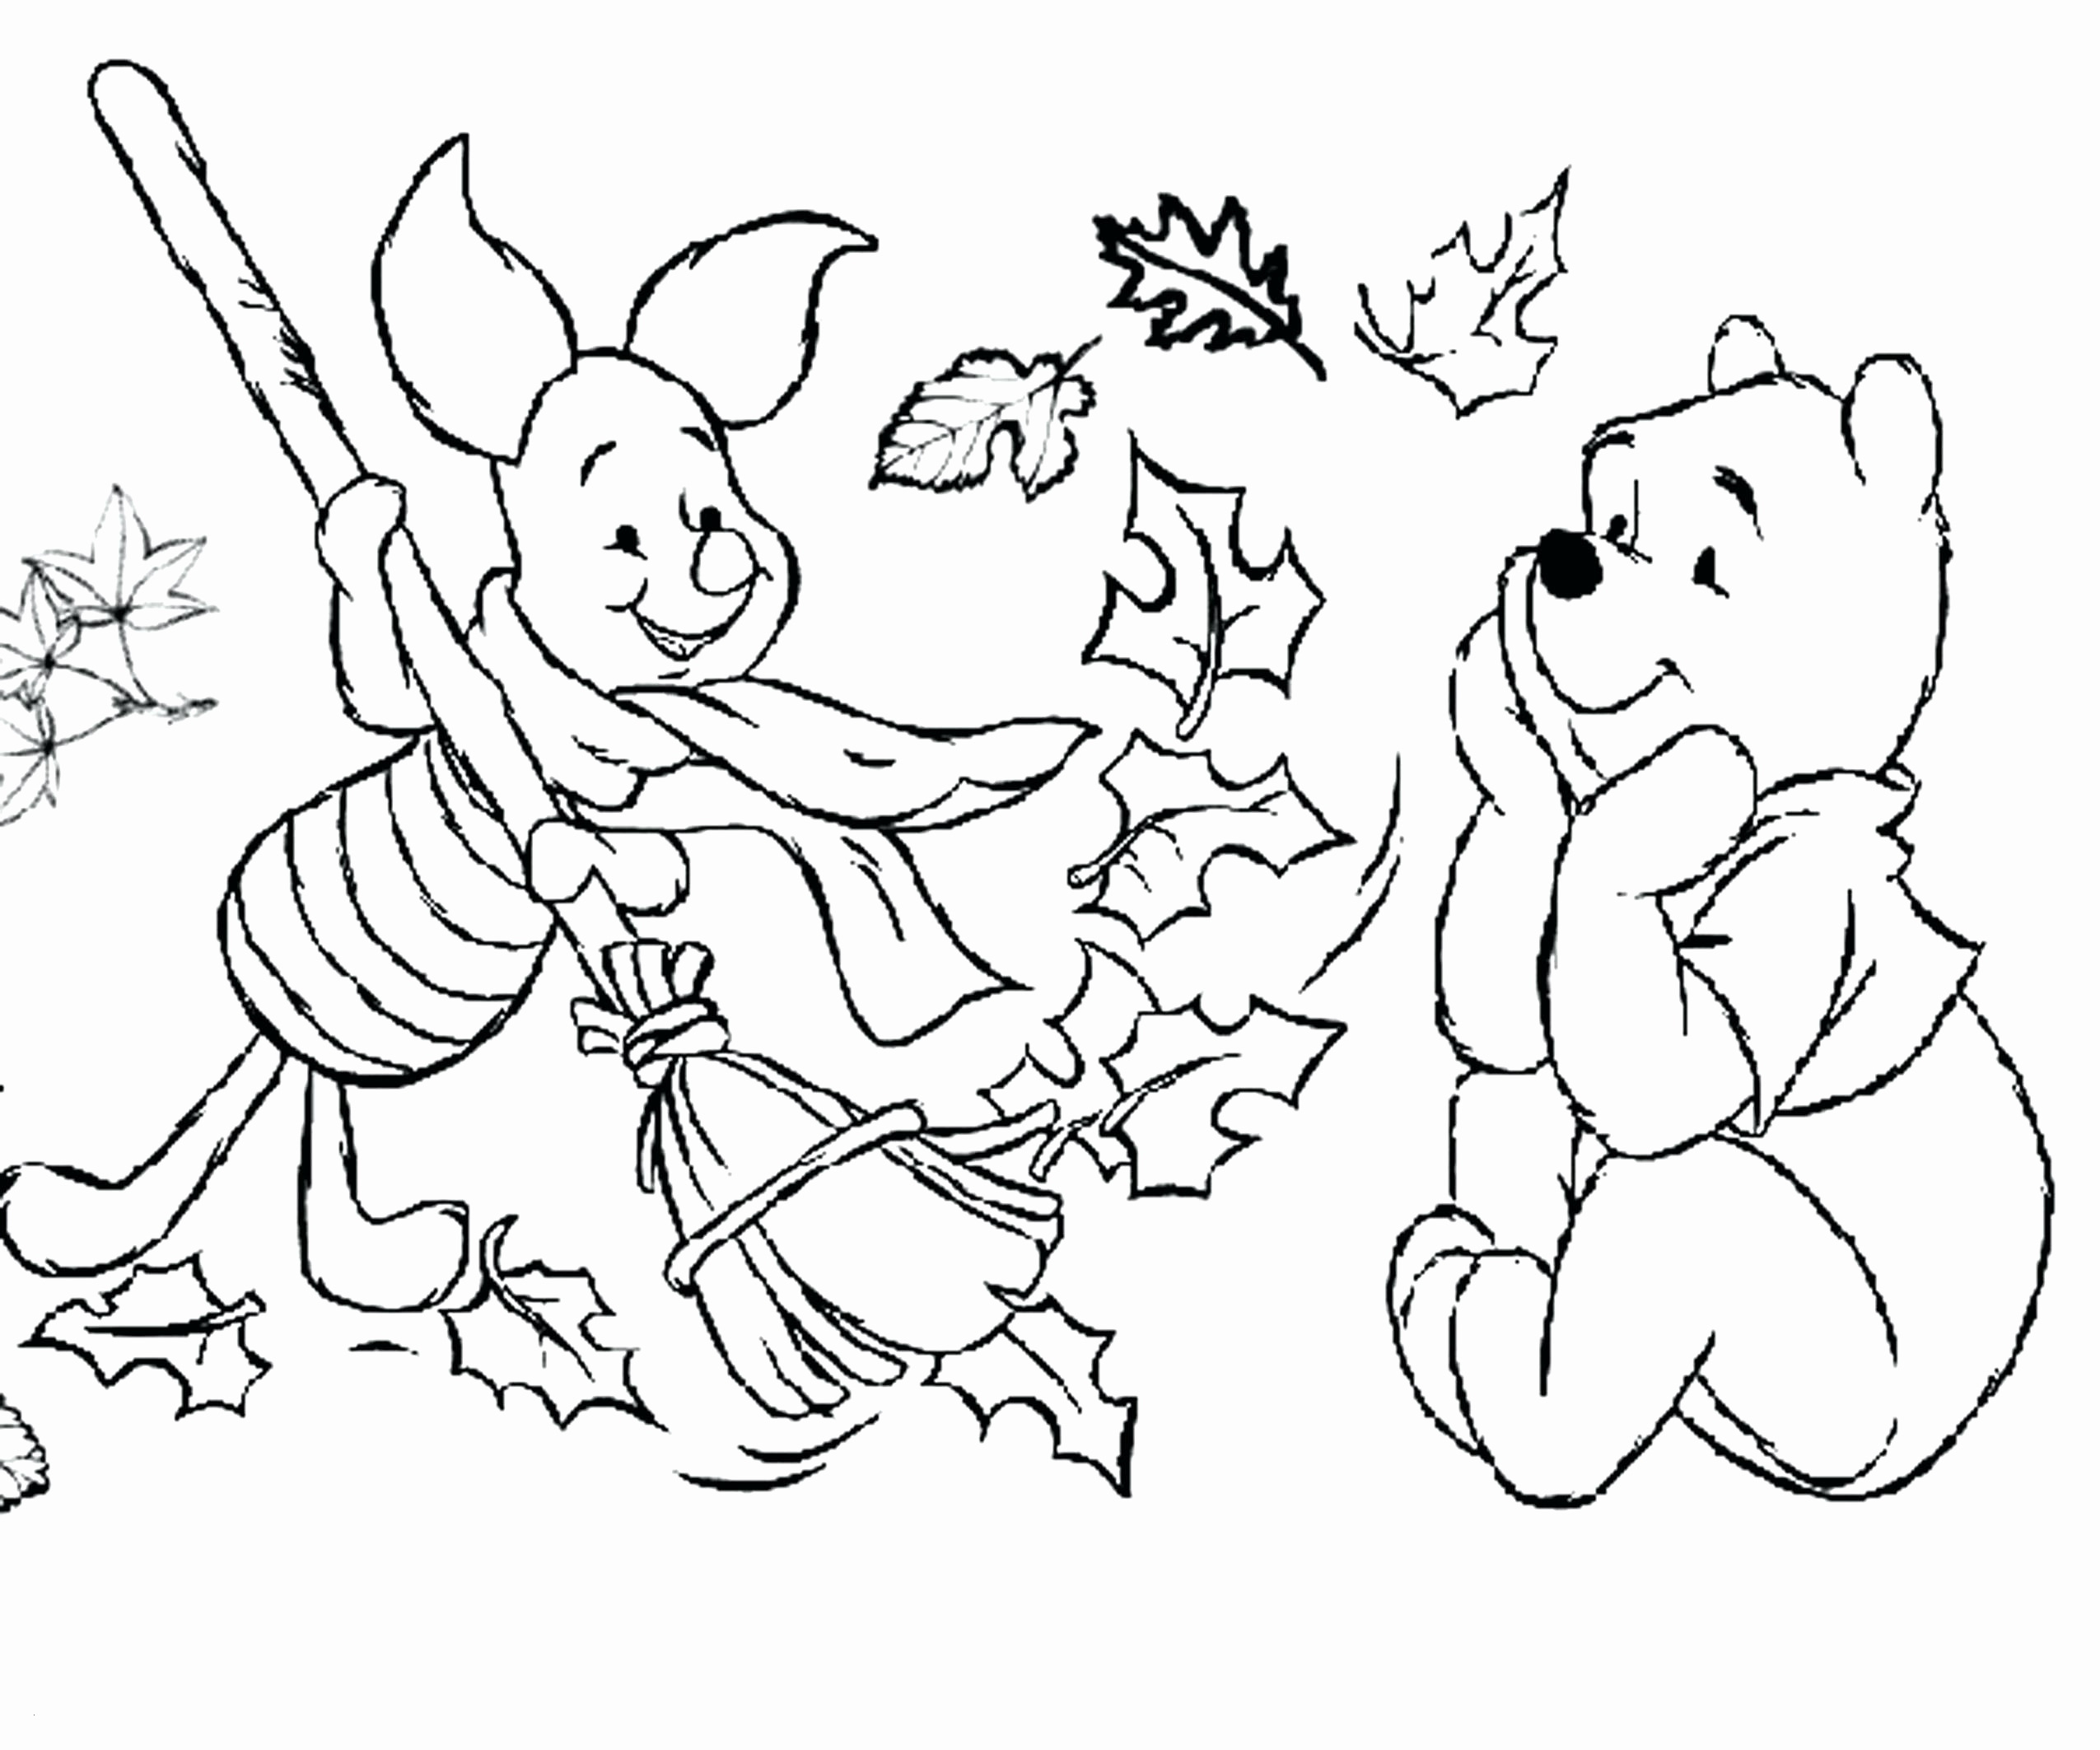 93 Top Bible Coloring Pages For Preschoolers Printable Download Free Images